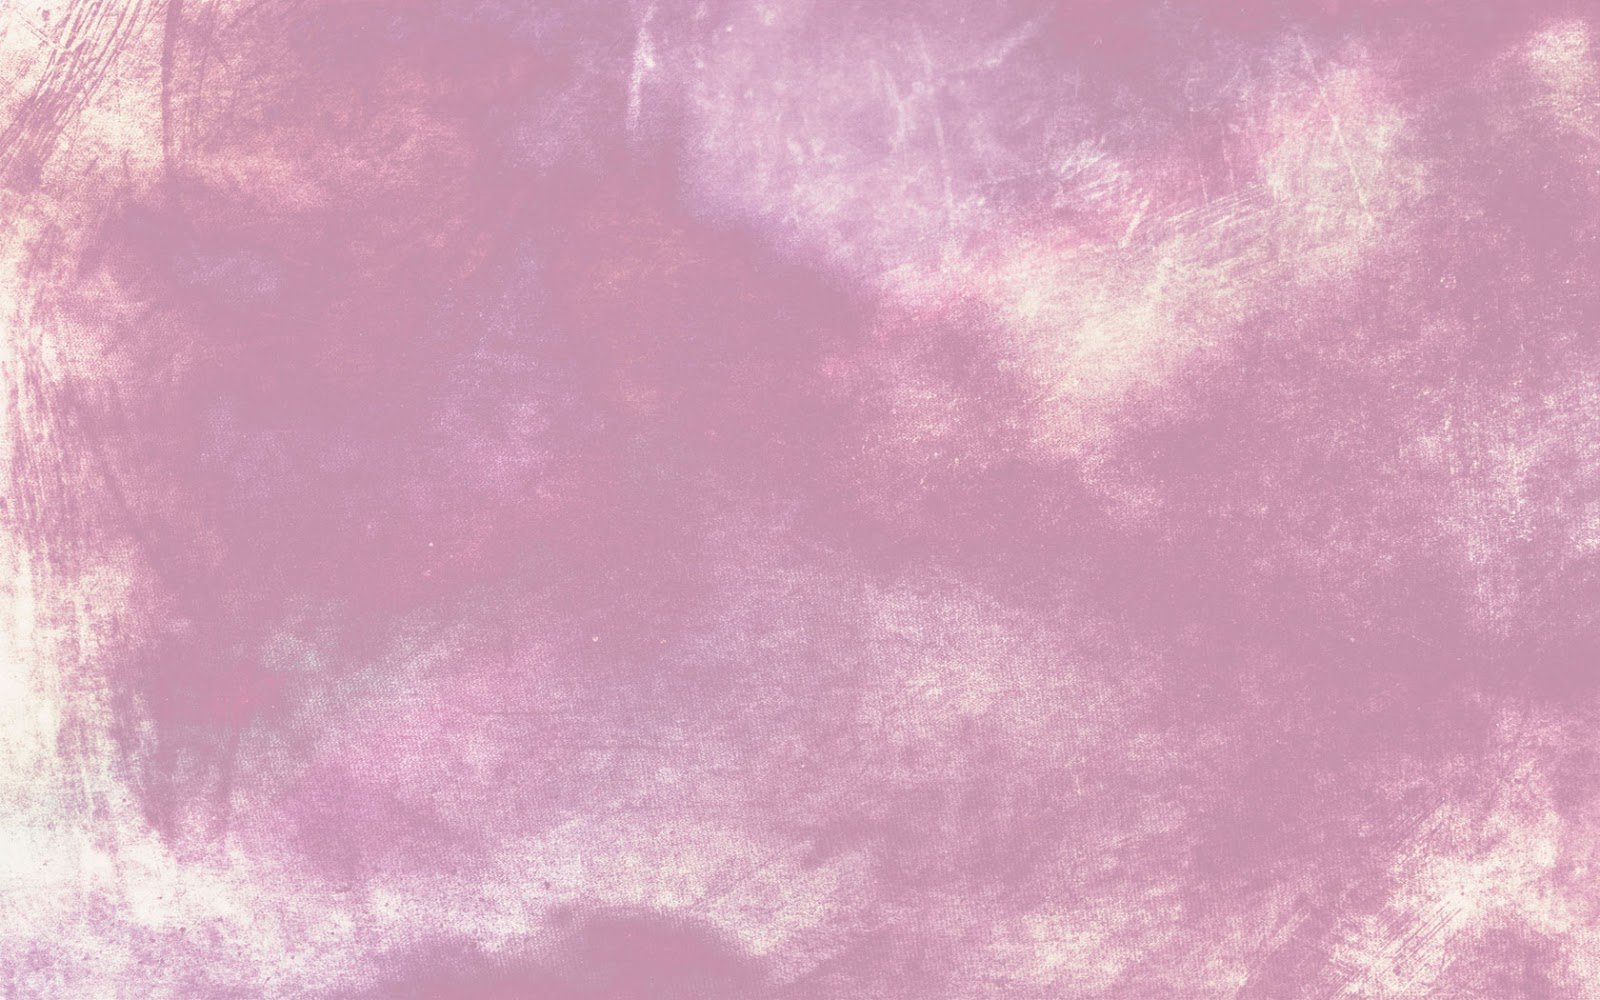 tumblr backgrounds light pink - photo #38